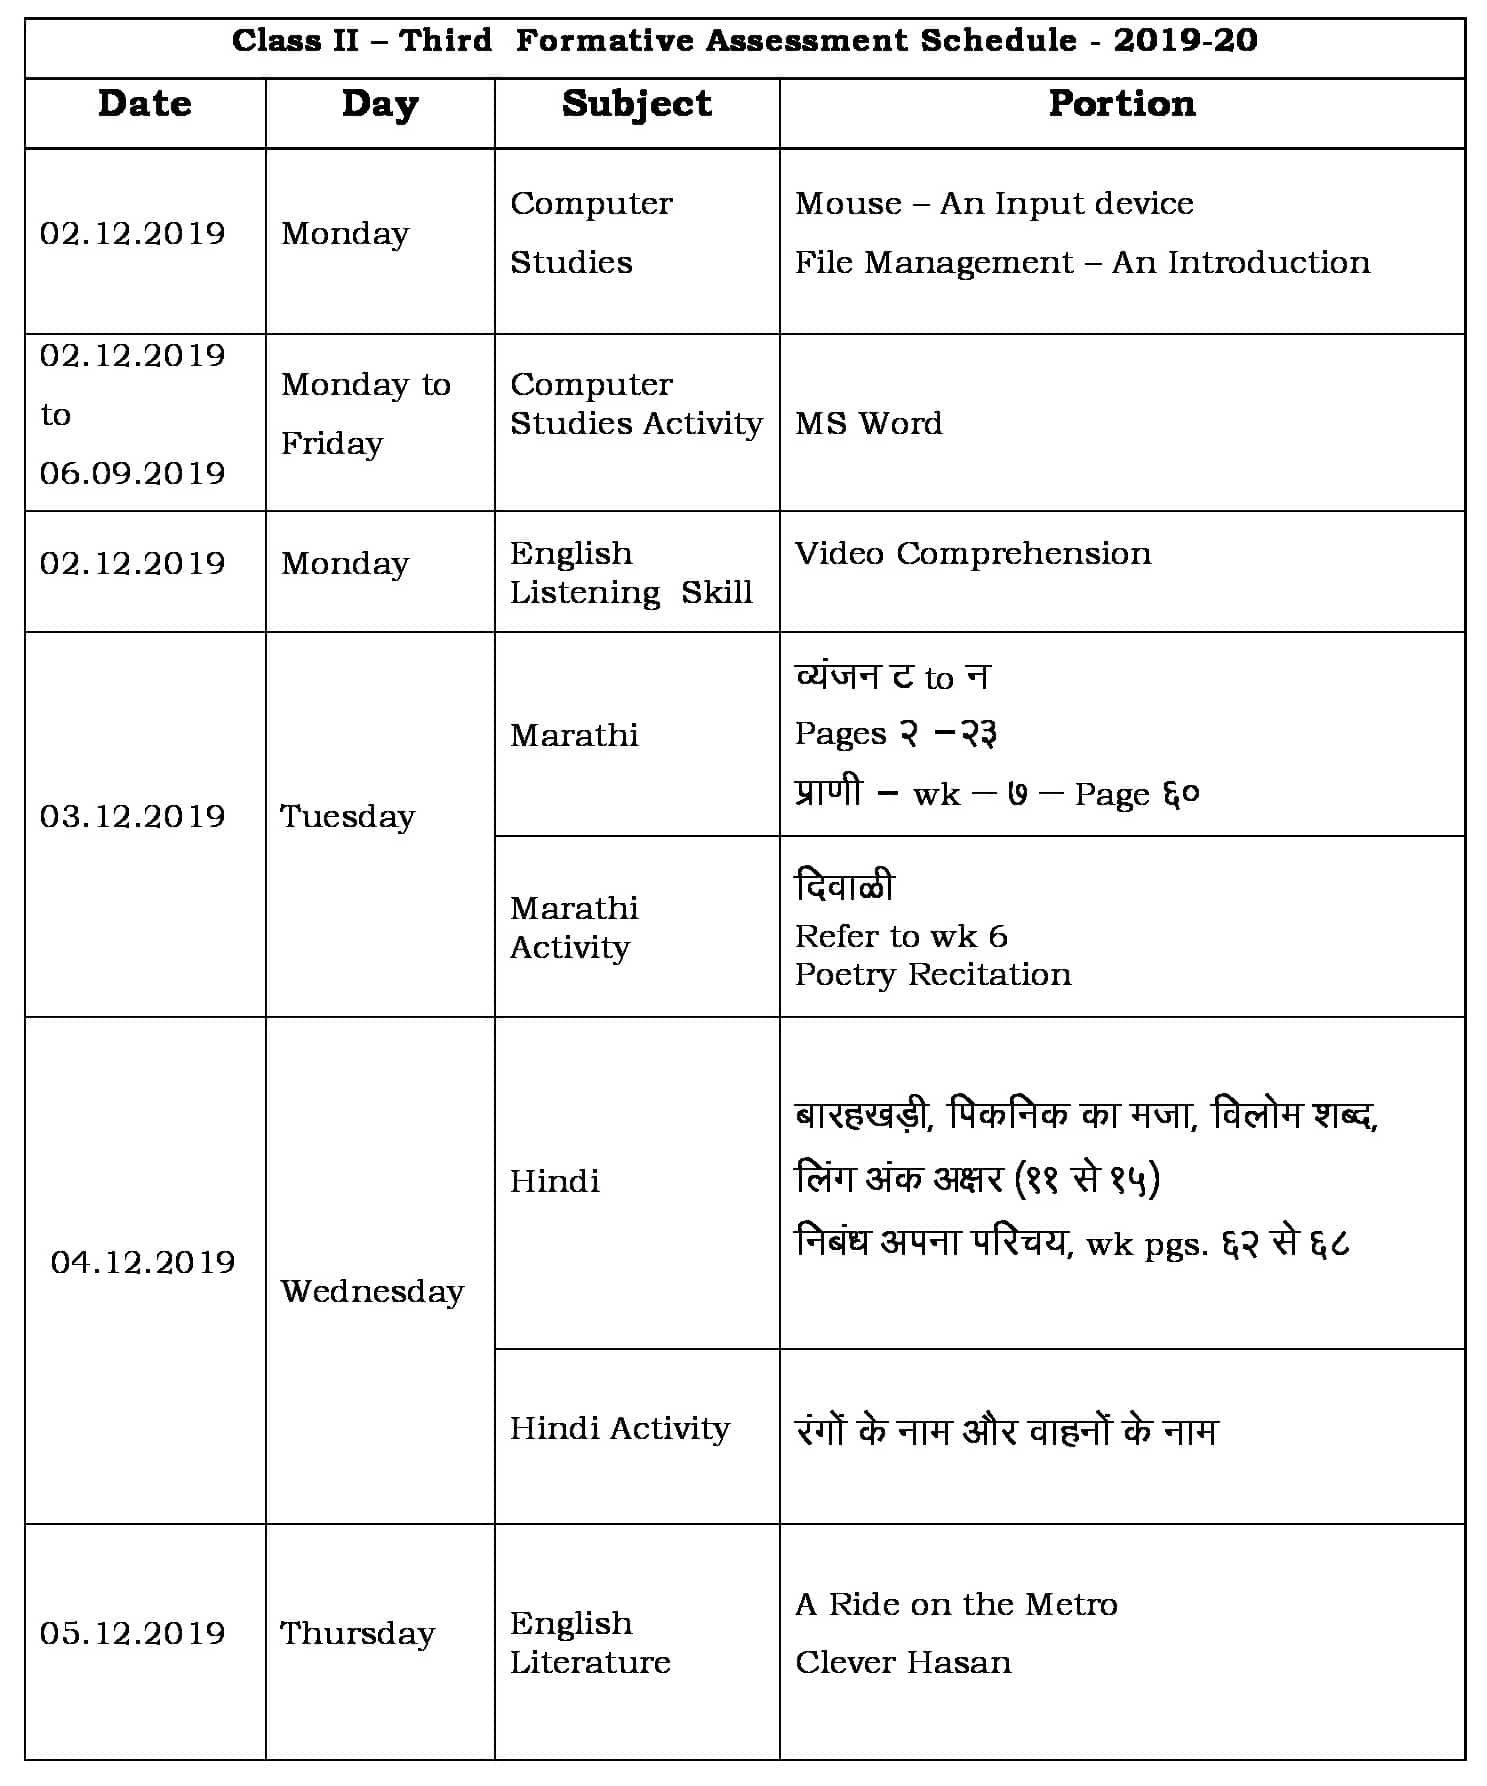 FA-3 Portion and Schedule 2019-20